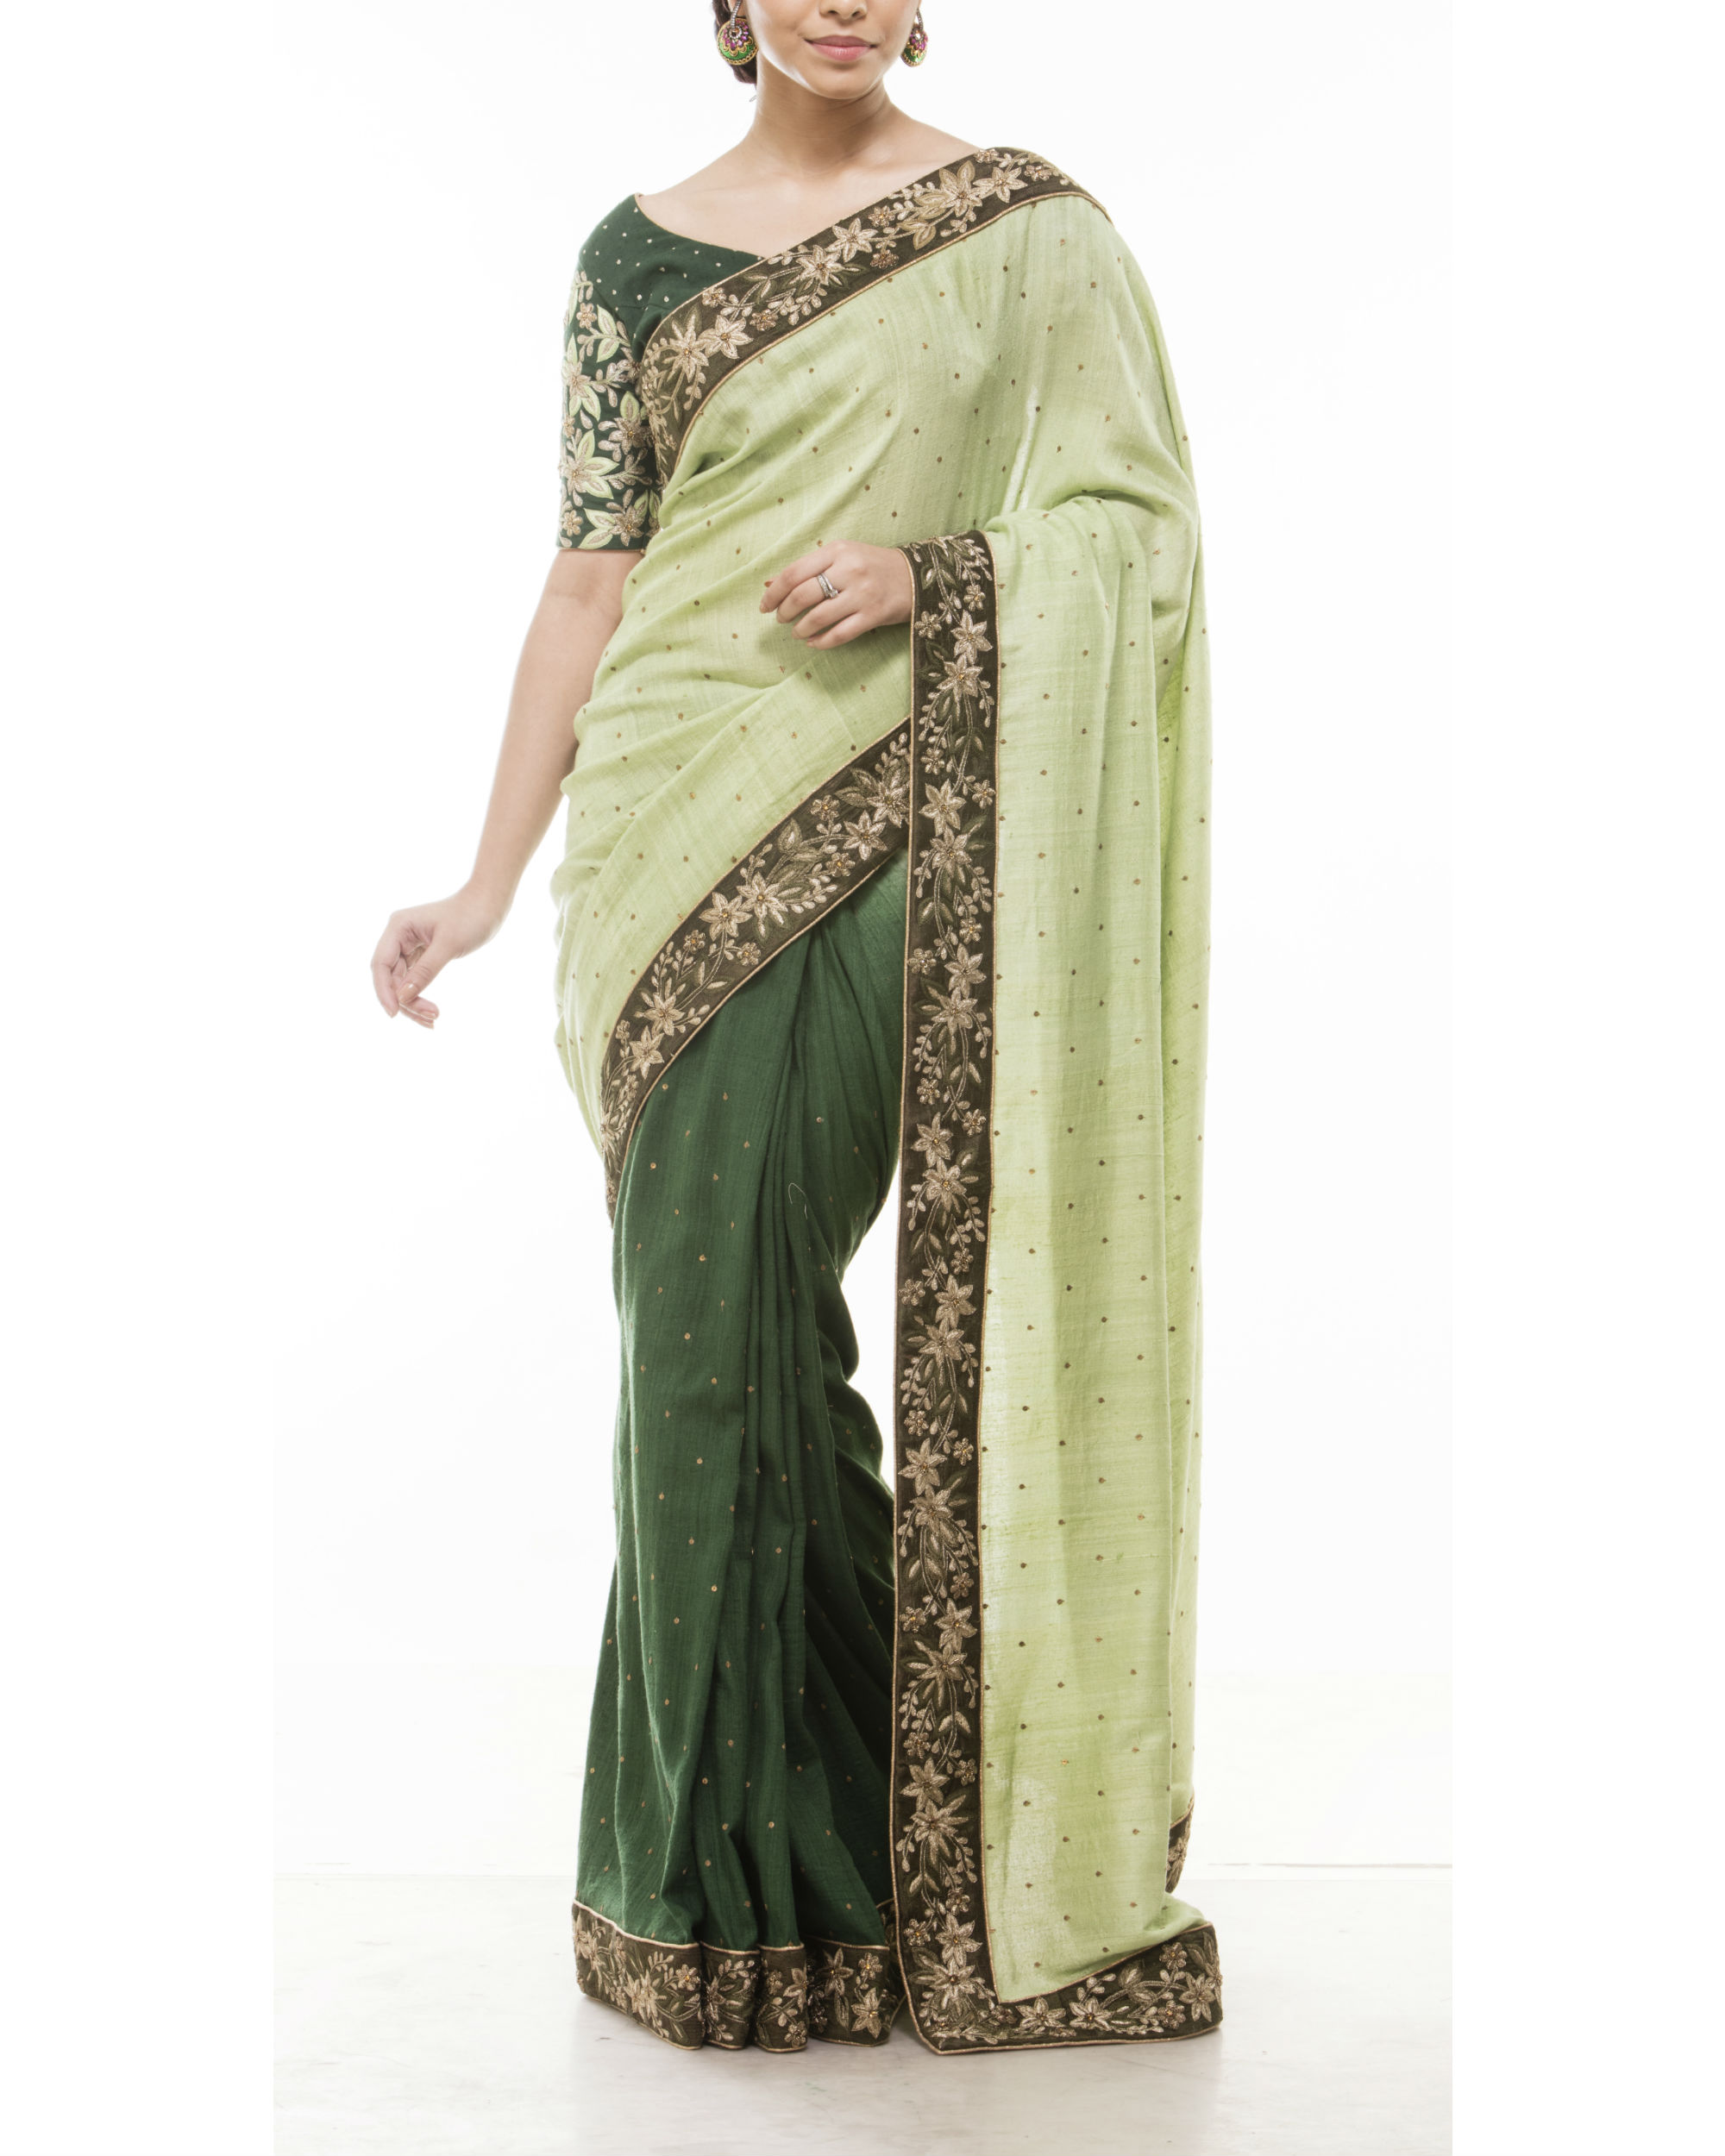 Green embroidered sari